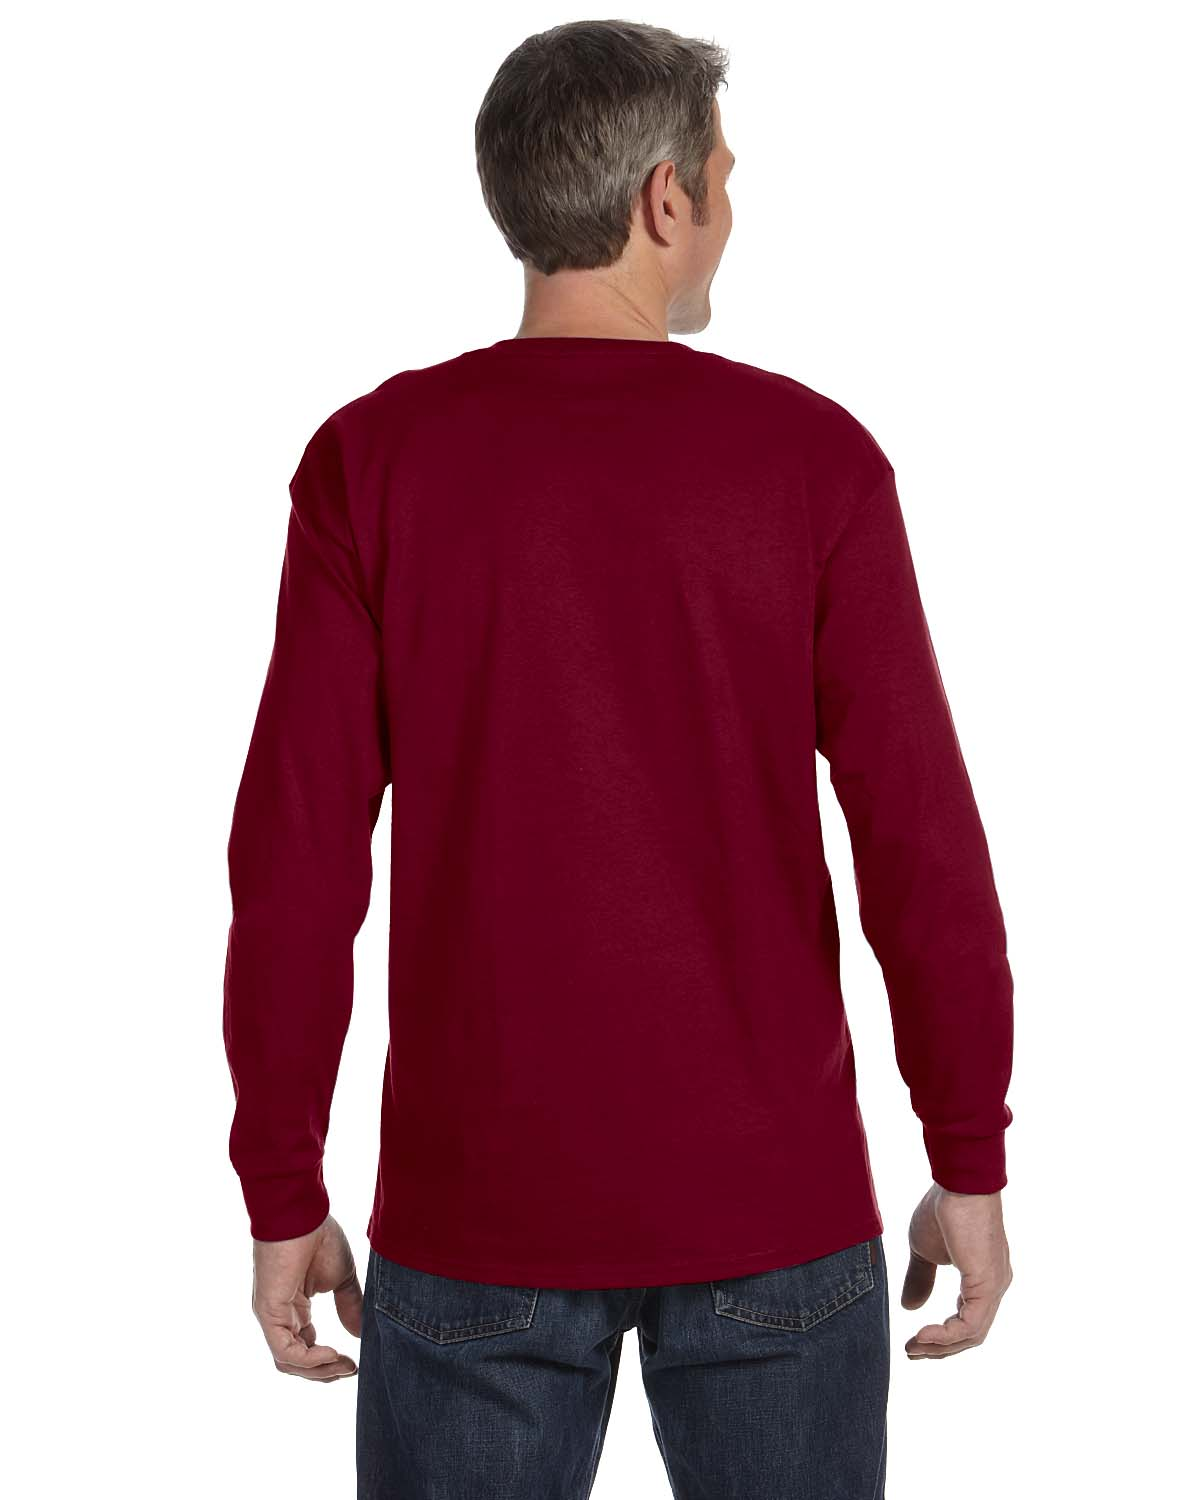 Gildan-Mens-T-Shirt-Long-Sleeve-Heavy-Cotton-5-3-oz-S-XL-R-G540-5400 thumbnail 20